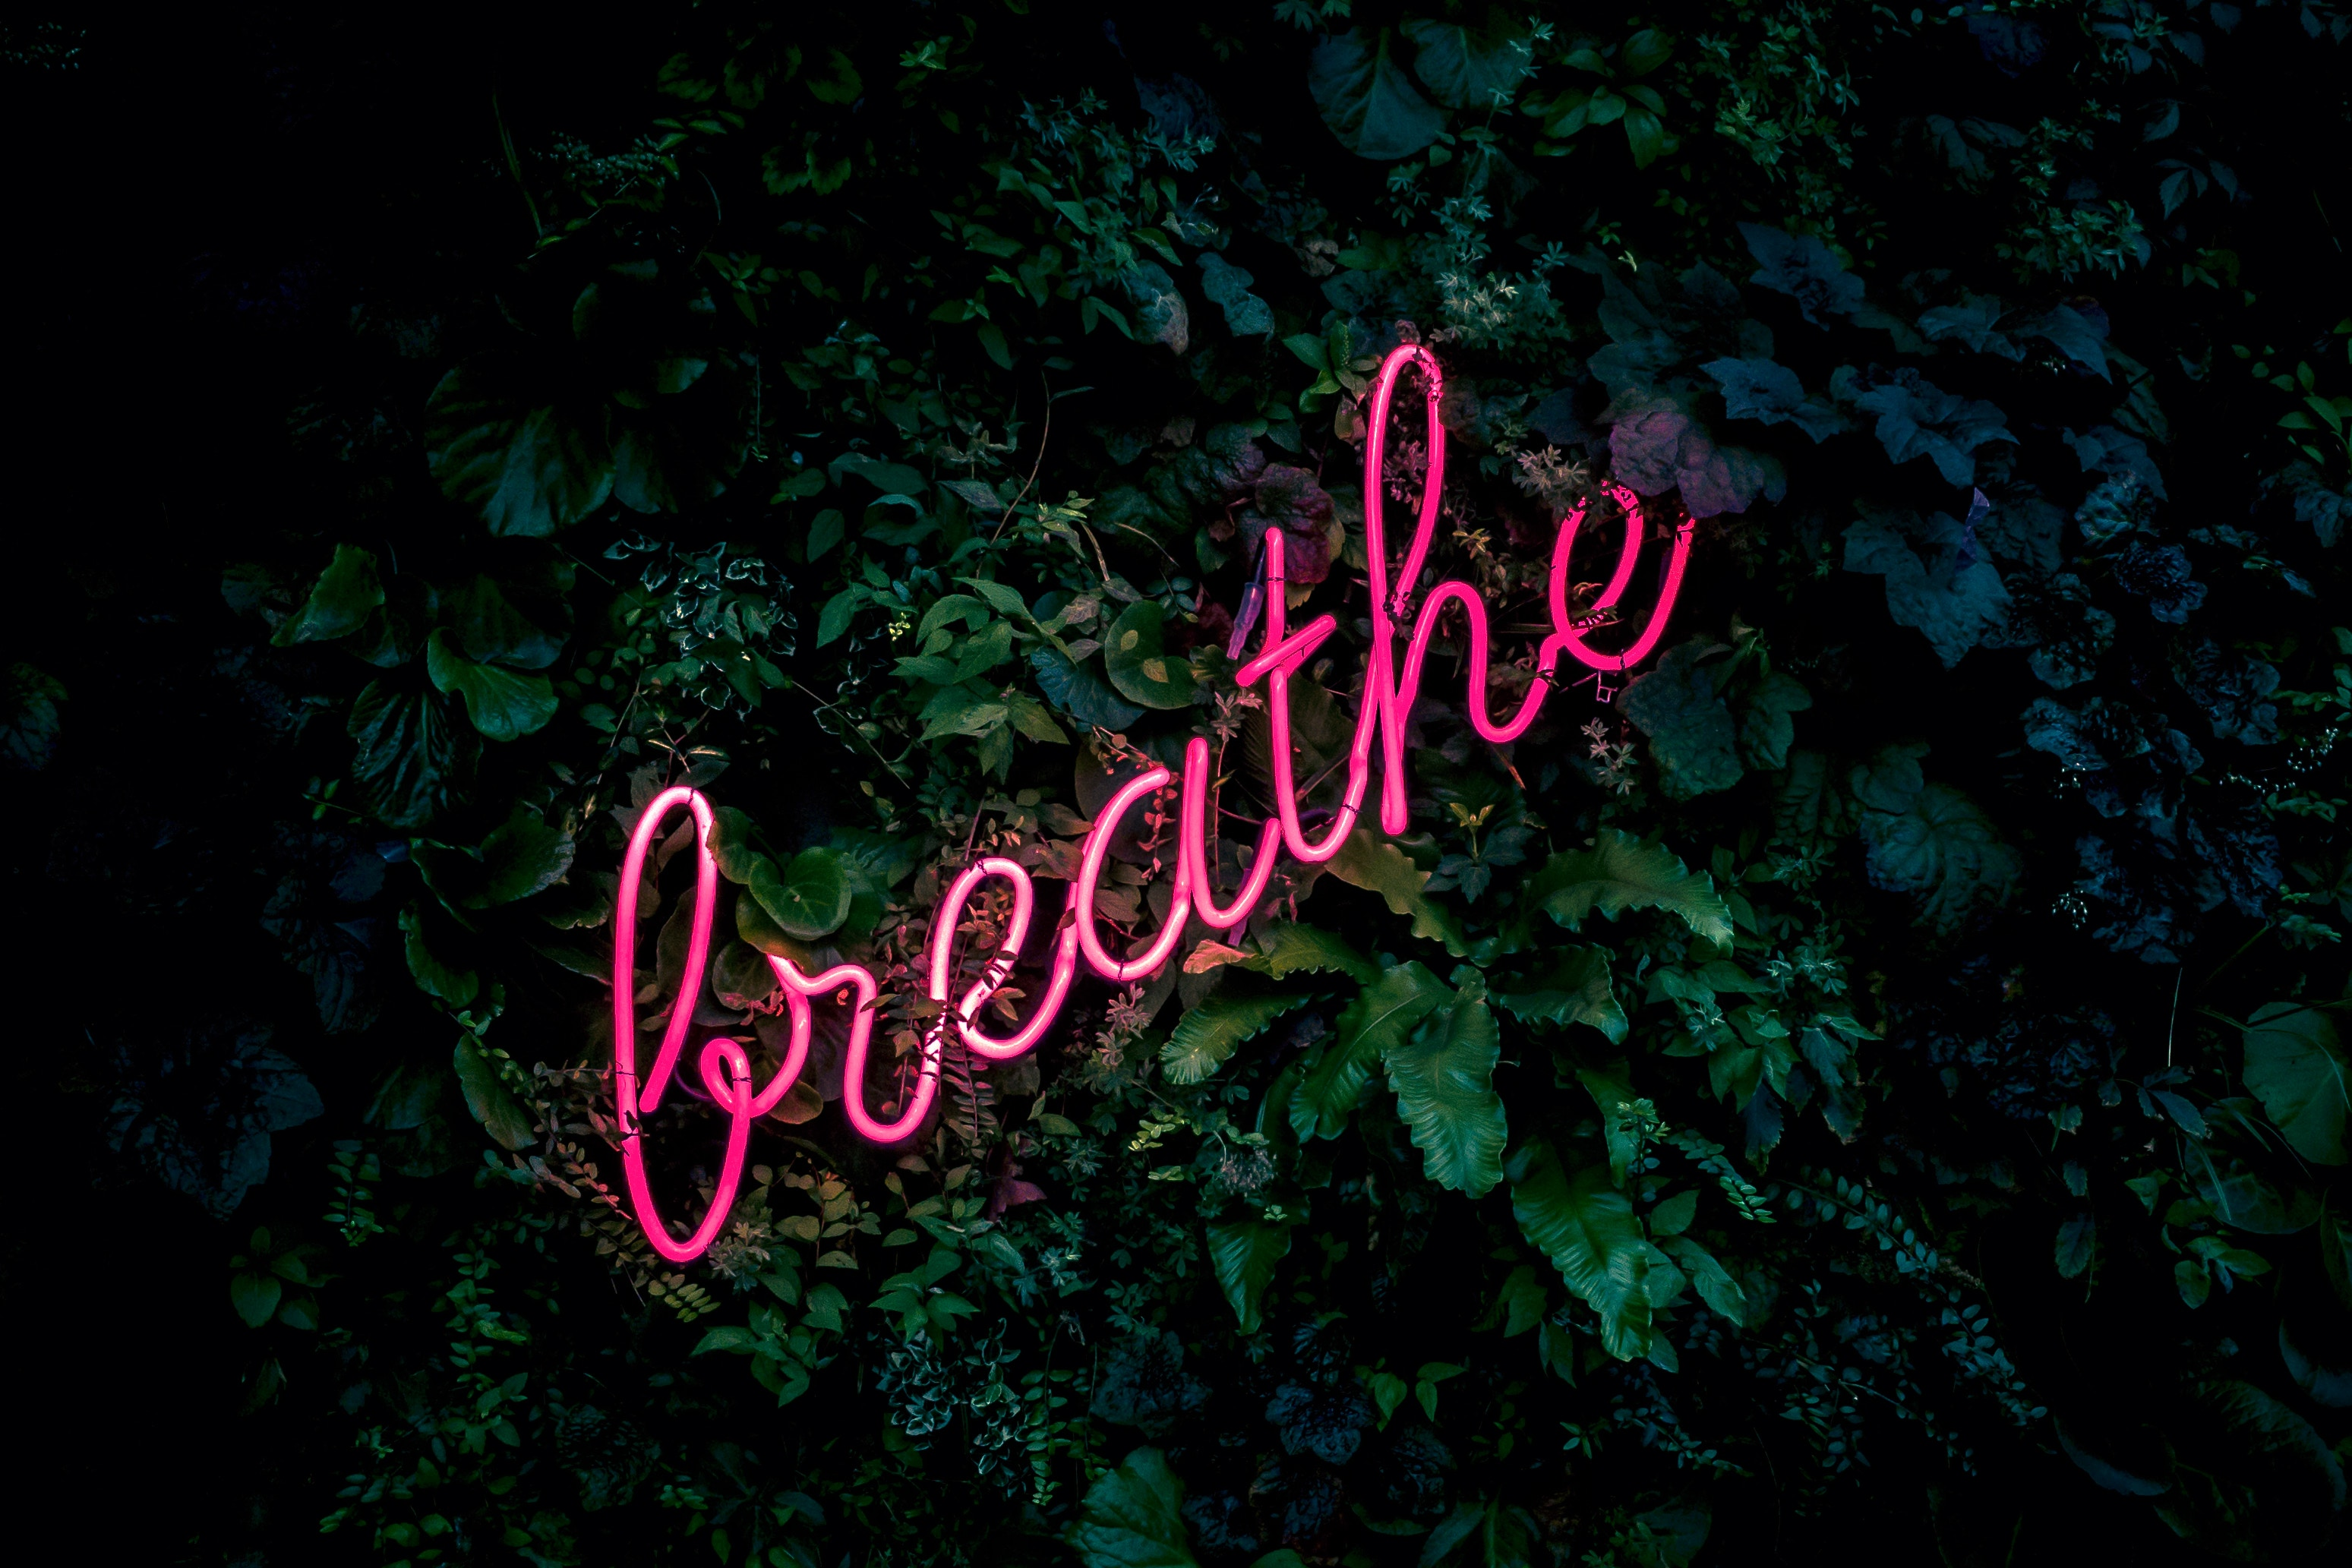 Dark neon pink lights spell out the word 'breathe' in cursive with a jungle background